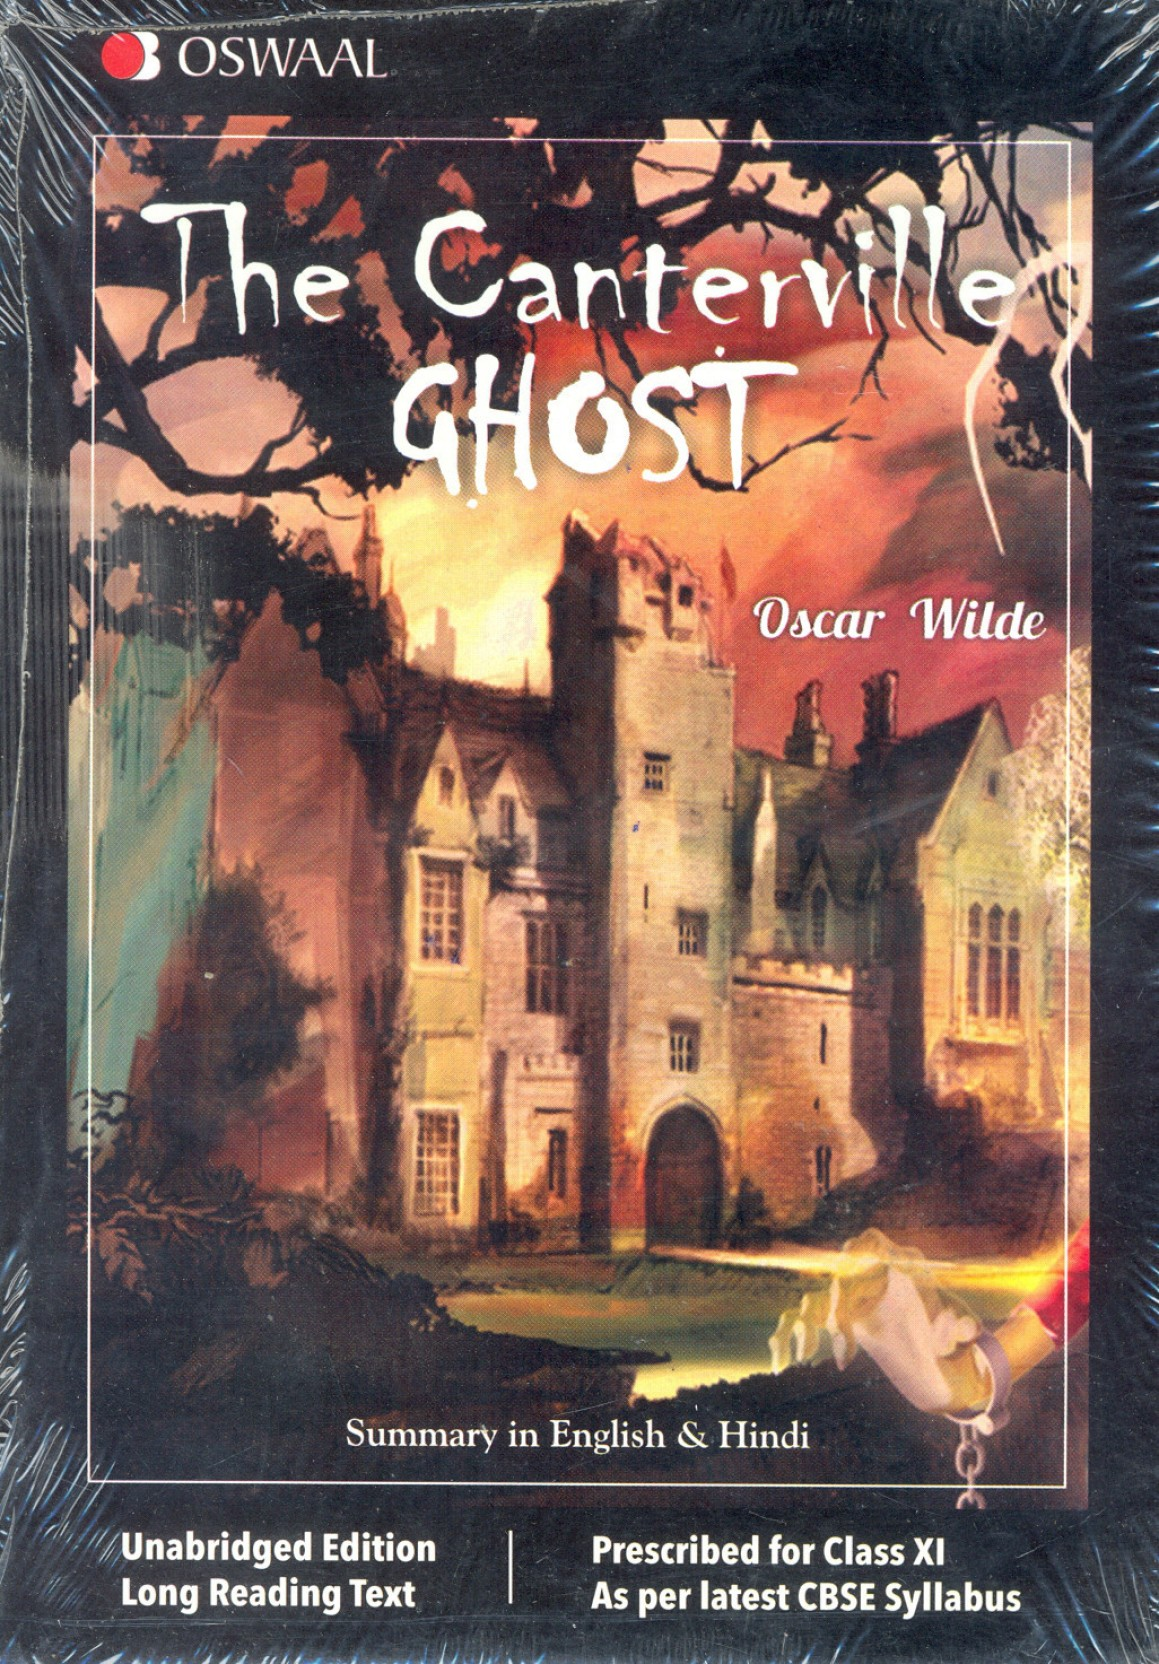 book review of novel the canterville ghost This humorous look at a culture clash between a british ghost and an american family was first published in 1887 as a serial in the upper-class periodical court and society review in 1891, ''the canterville ghost'' was one of the stories published as a collection under the title lord arthur savile's crime and.